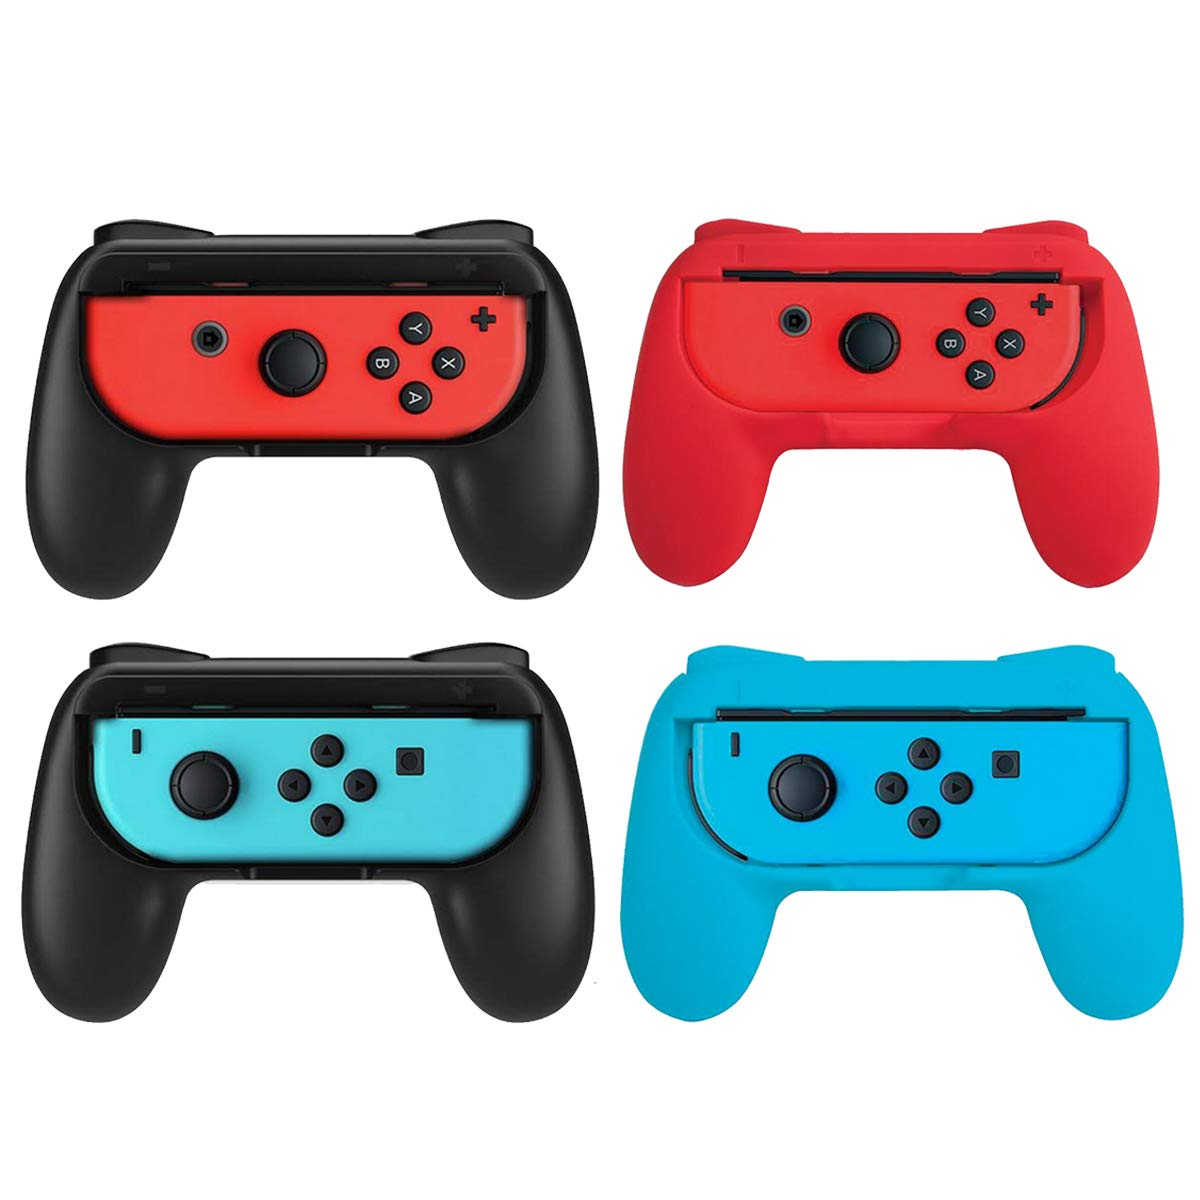 Beastron Joy Con Grips Compatible with Nintendo Switch, Handle Kit for Nintendo Game Switch Joy Con Controller 4 Pack by Beastron (Image #1)